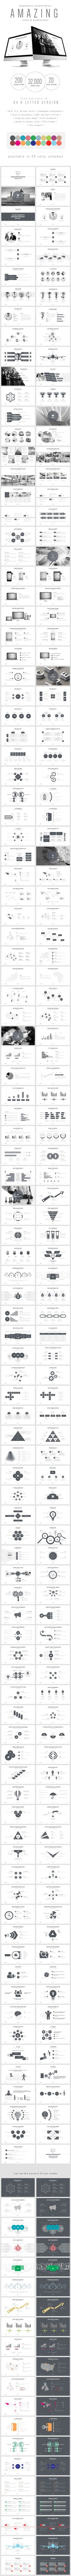 Amazing Black and White presentation template on Behance